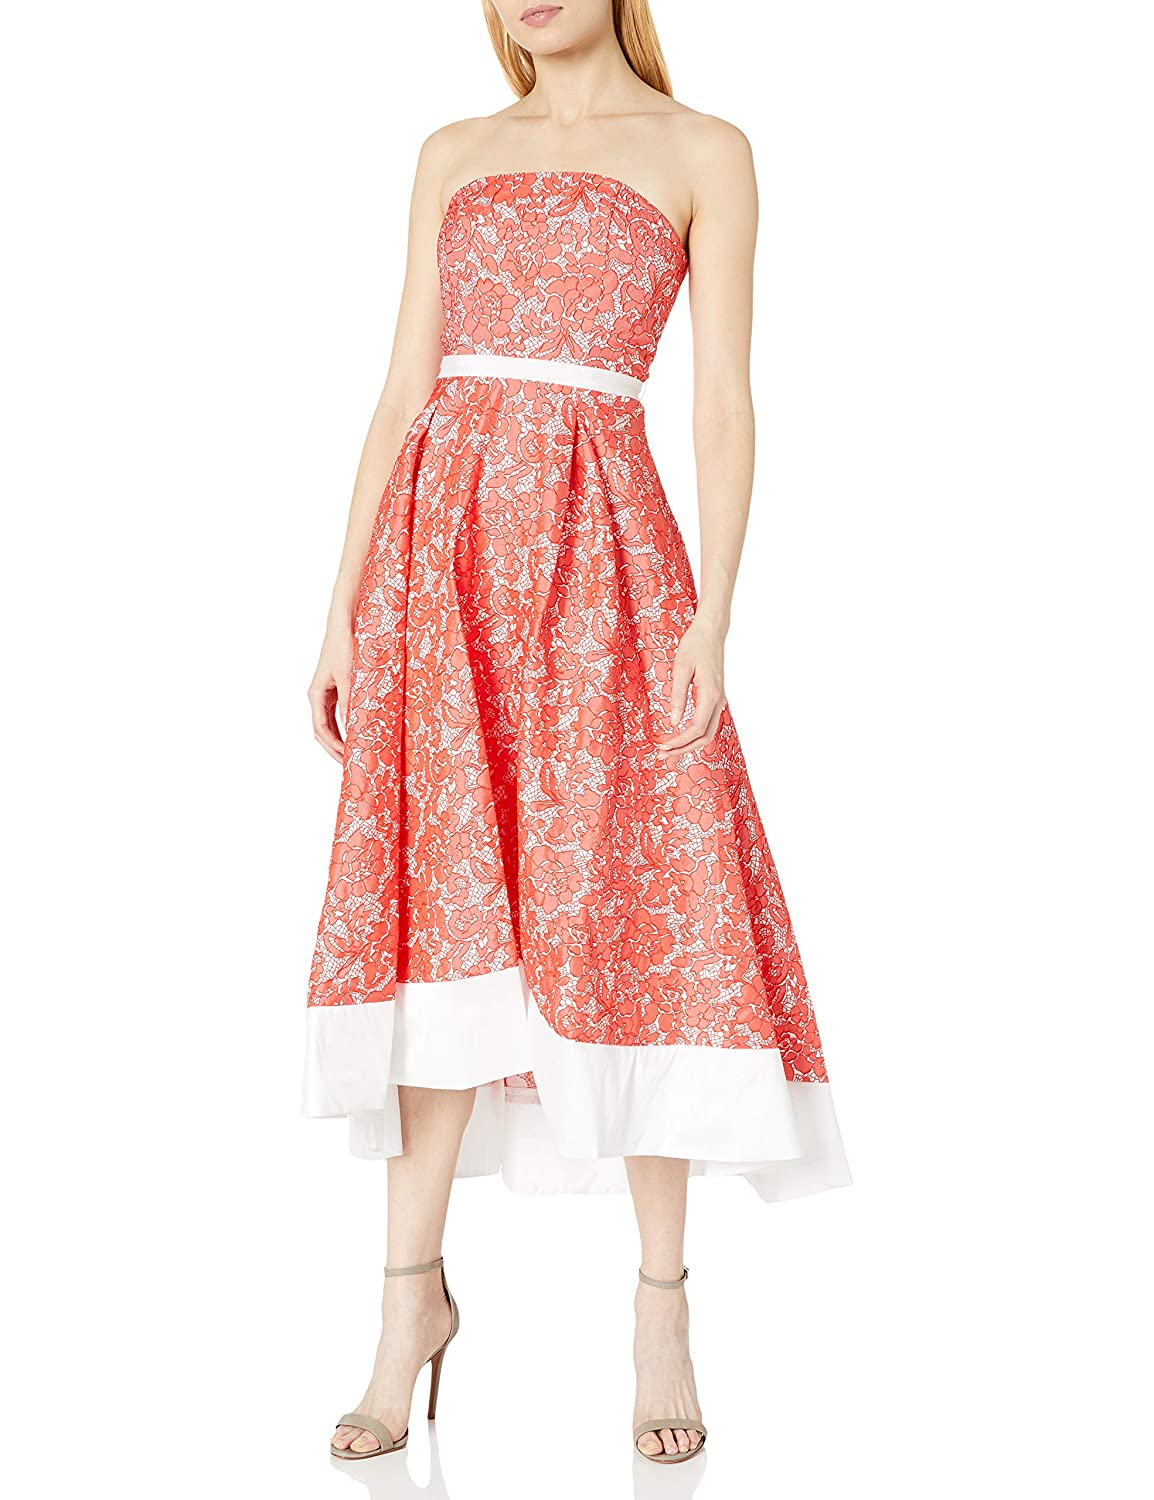 JS Boutique Womens Strapless Lace Brocade W//Hi Lo Solid Contrast Banded Hem